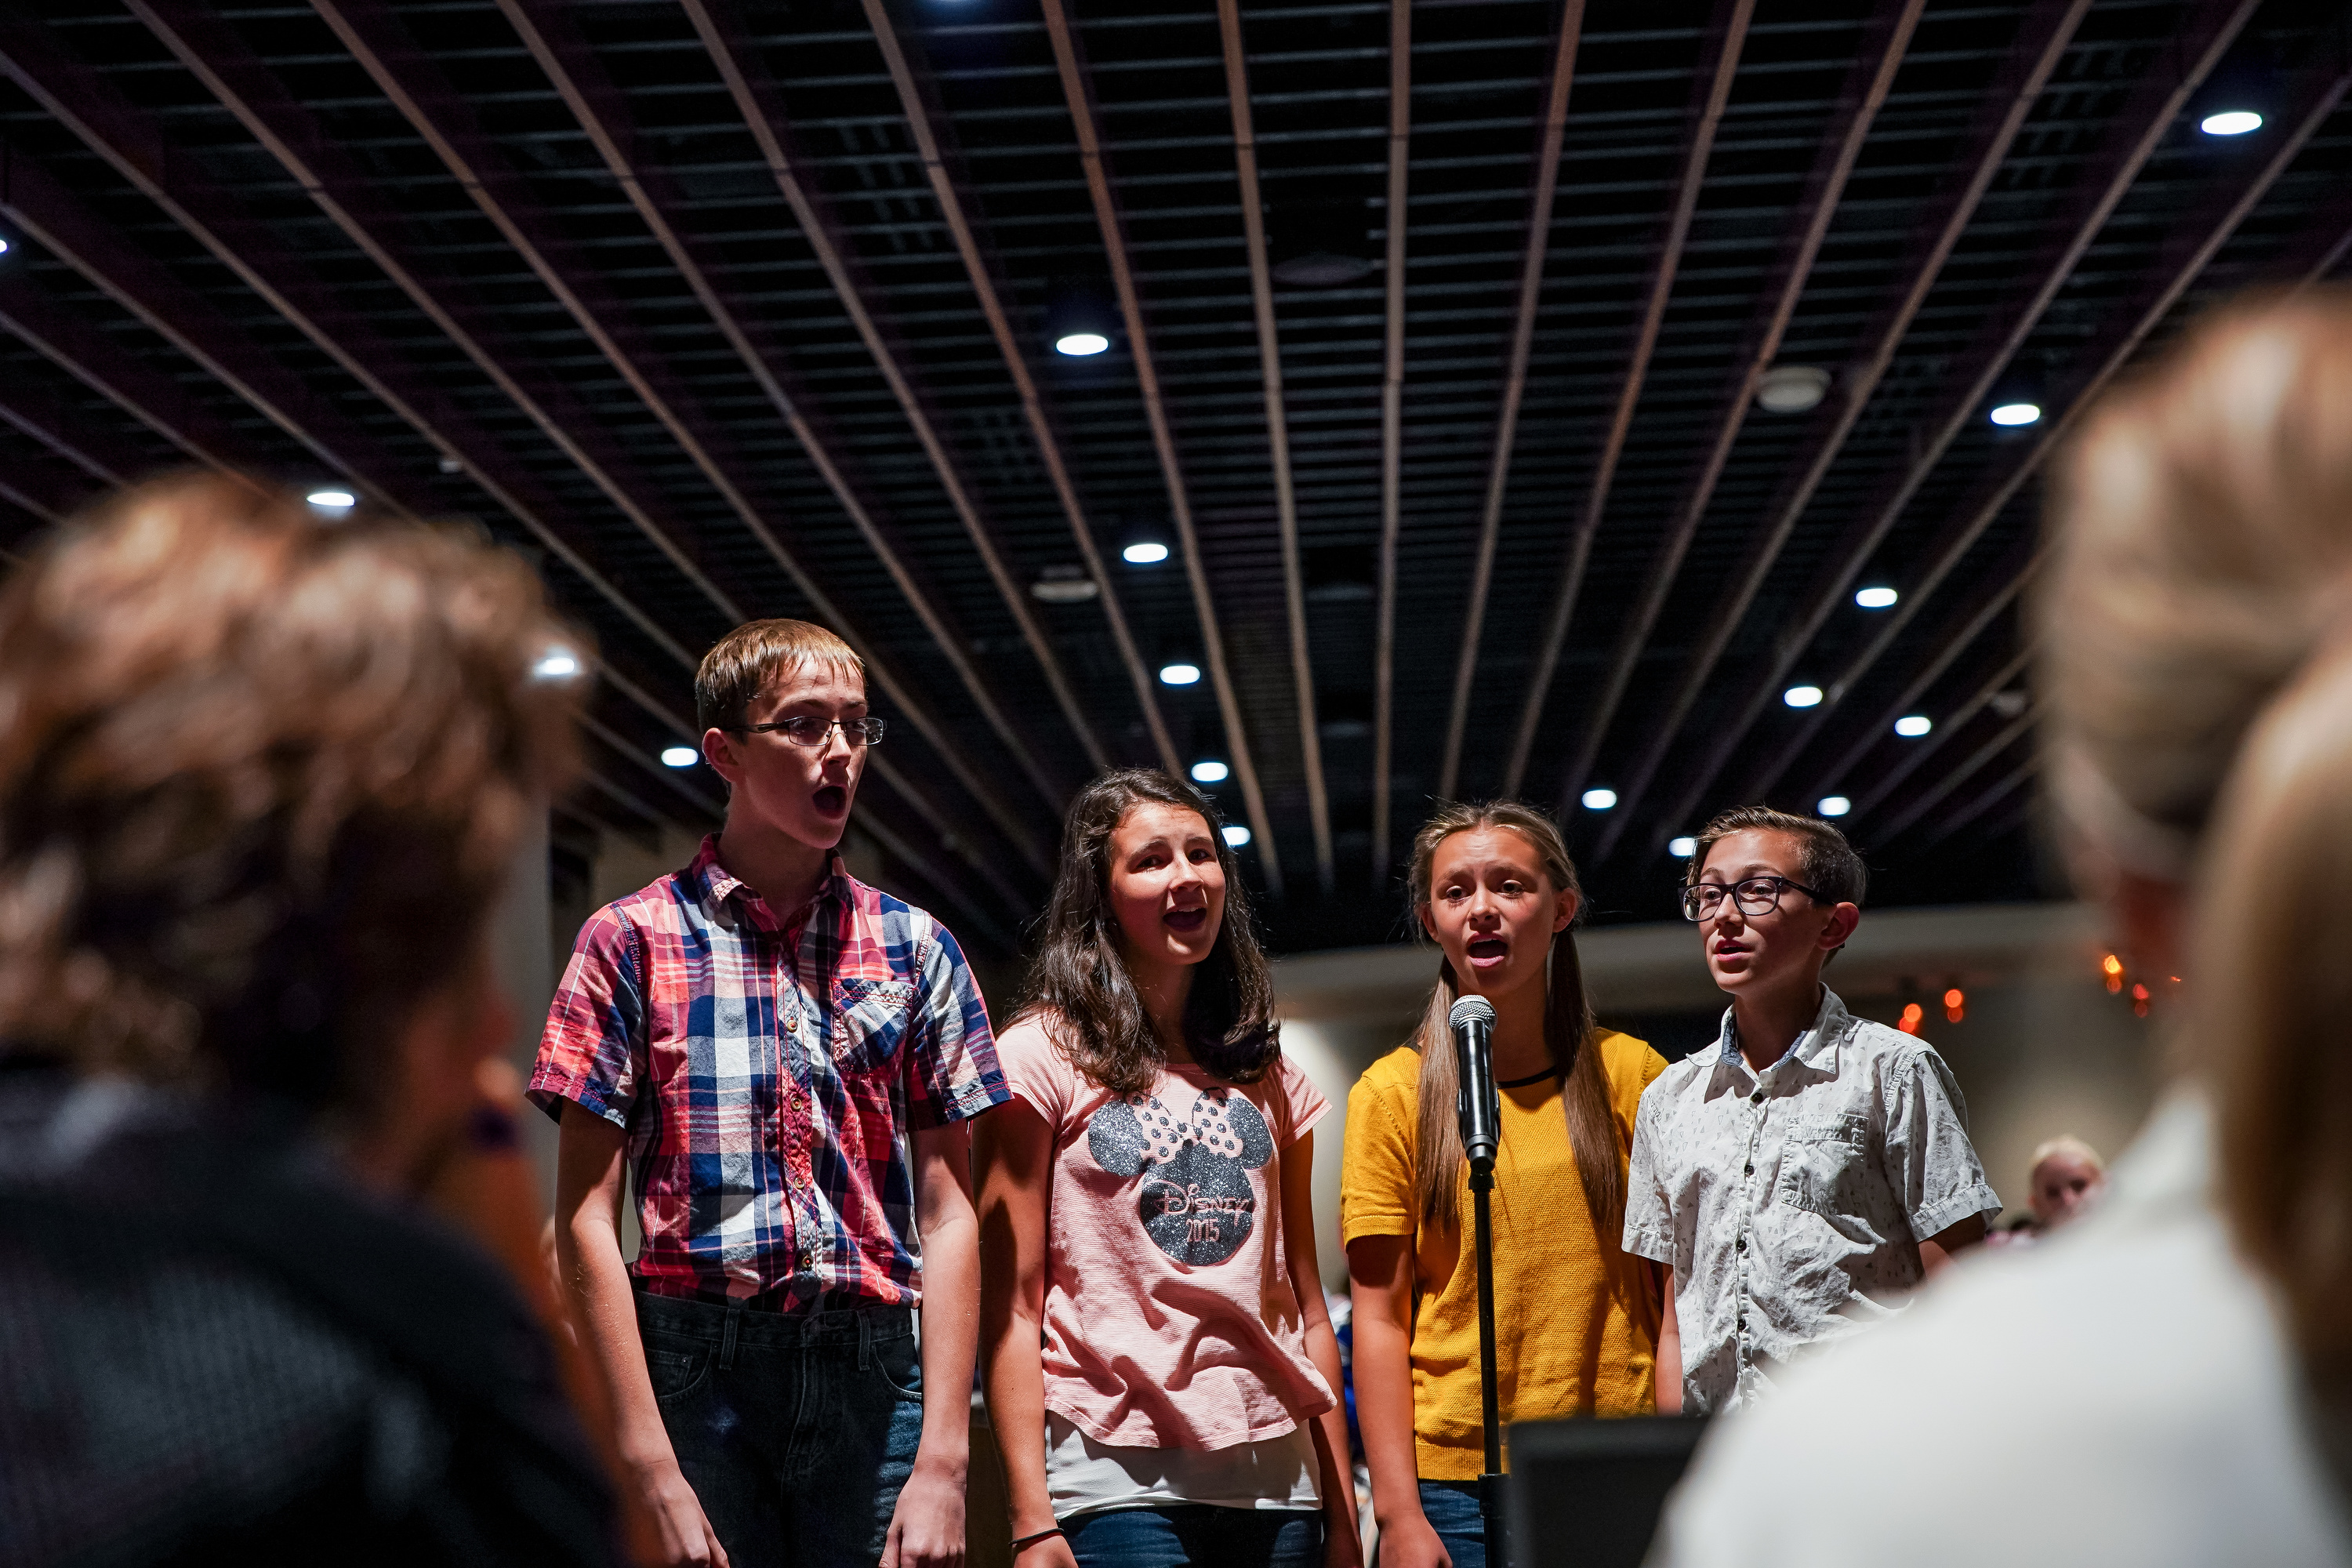 A.J. Stalker, 13, Katelyn Rowley, 12, Olivia Grover, 12, and Davy Kynoch, 14, of St. Anthony, Idaho, audition to sing the national anthem during the upcoming Utah Jazz season at Vivint Smart Home Arena in Salt Lake City on Friday, Sept. 20, 2019.